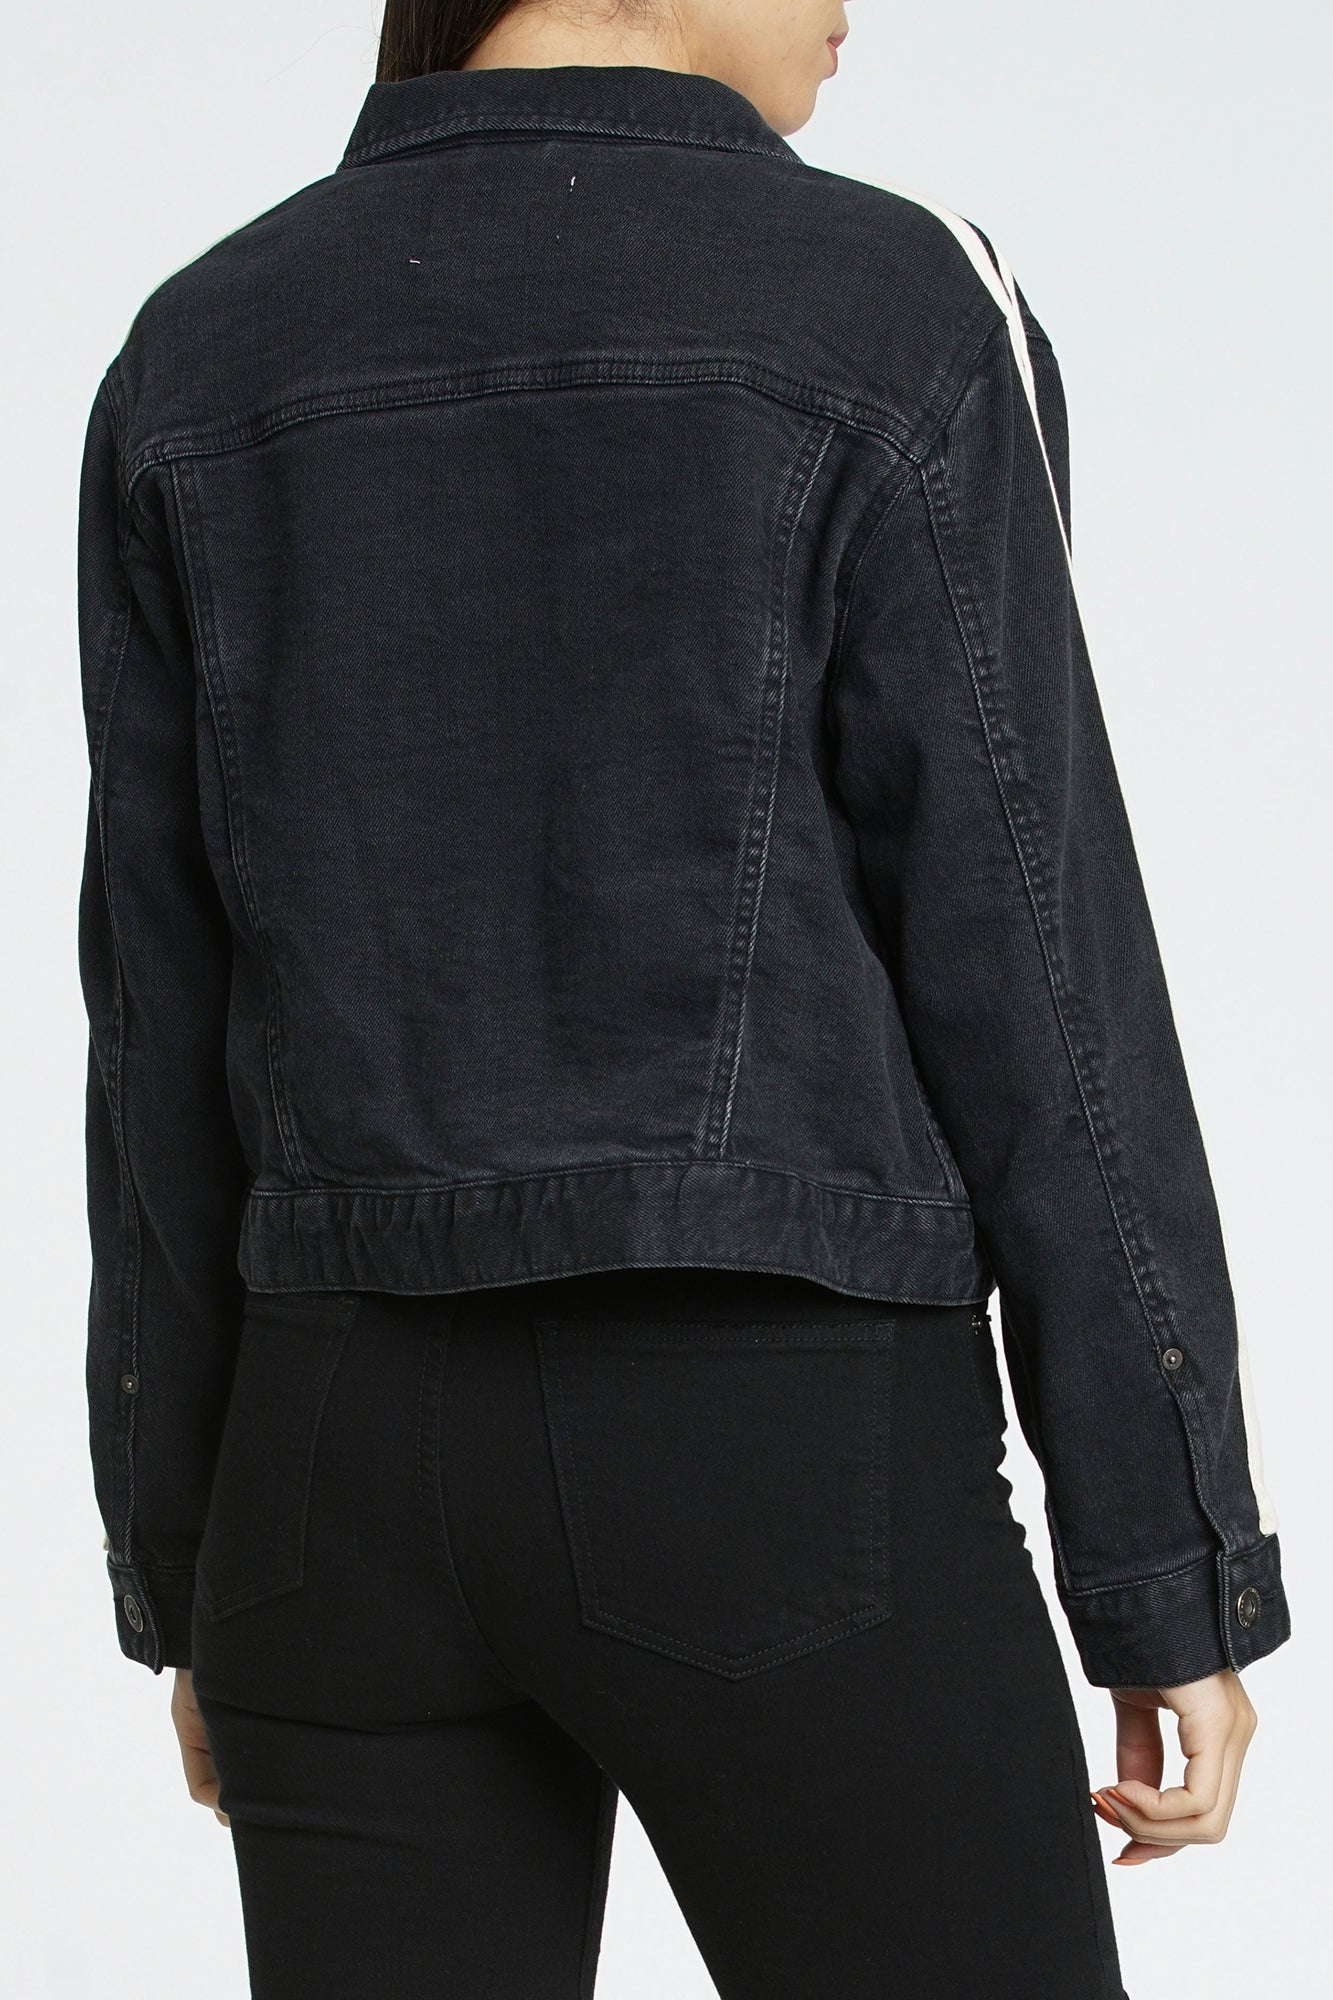 Naya Boyfriend Fit Denim Jacket - Berlin Night